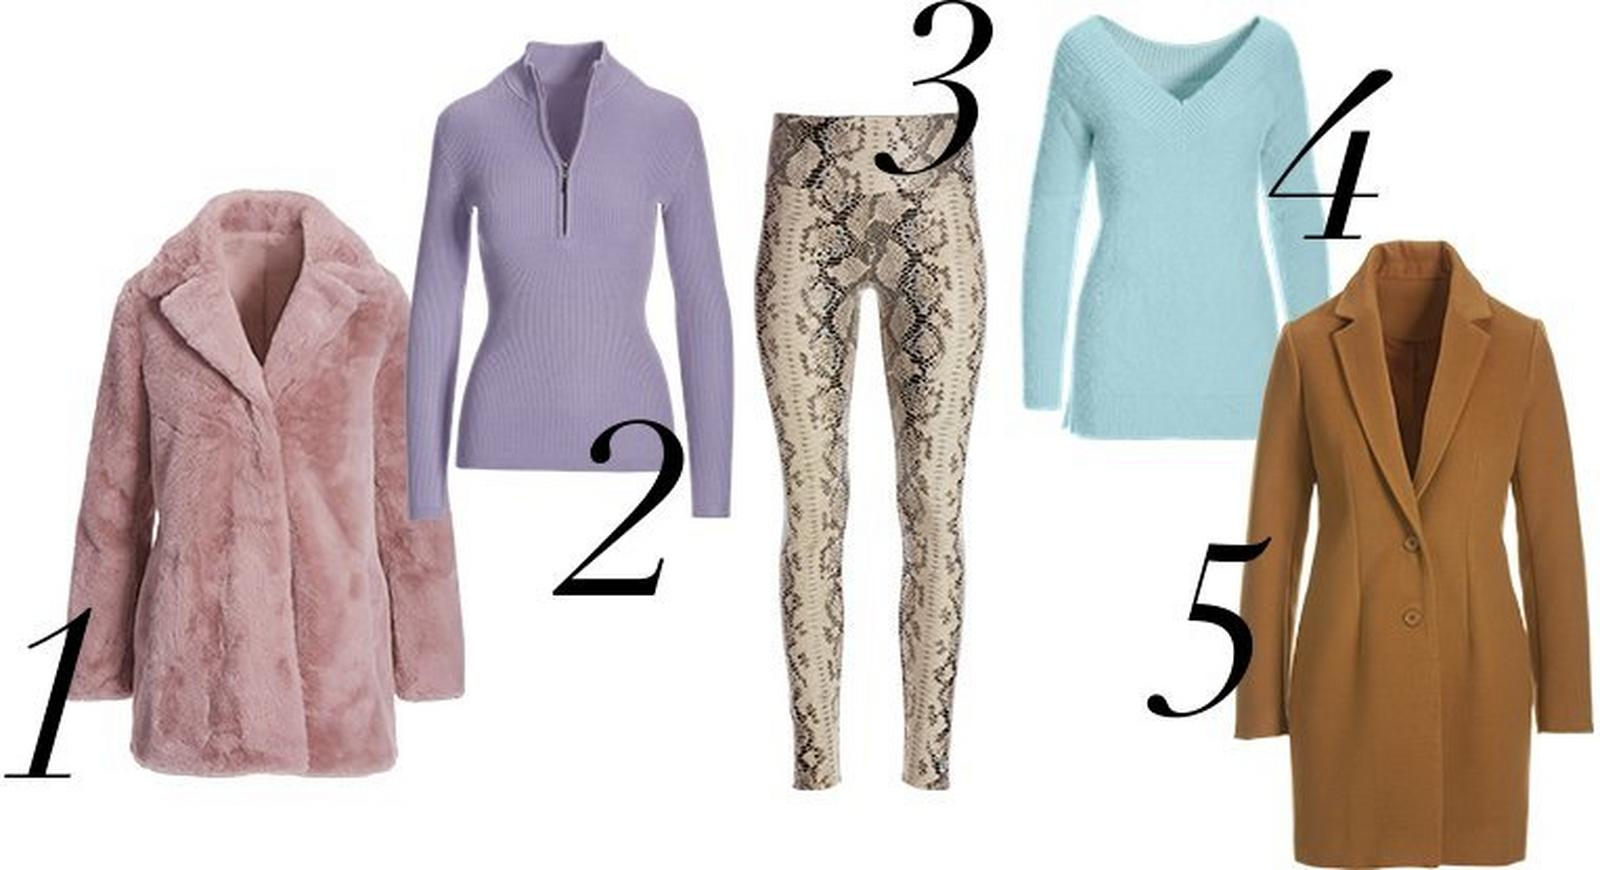 from left to right: pink faux pink coat, lavender half-zip ribbed sweater, beige snake print faux-leather leggings, light blue cozy v-neck sweater, and camel colored faux-wool topper coat.